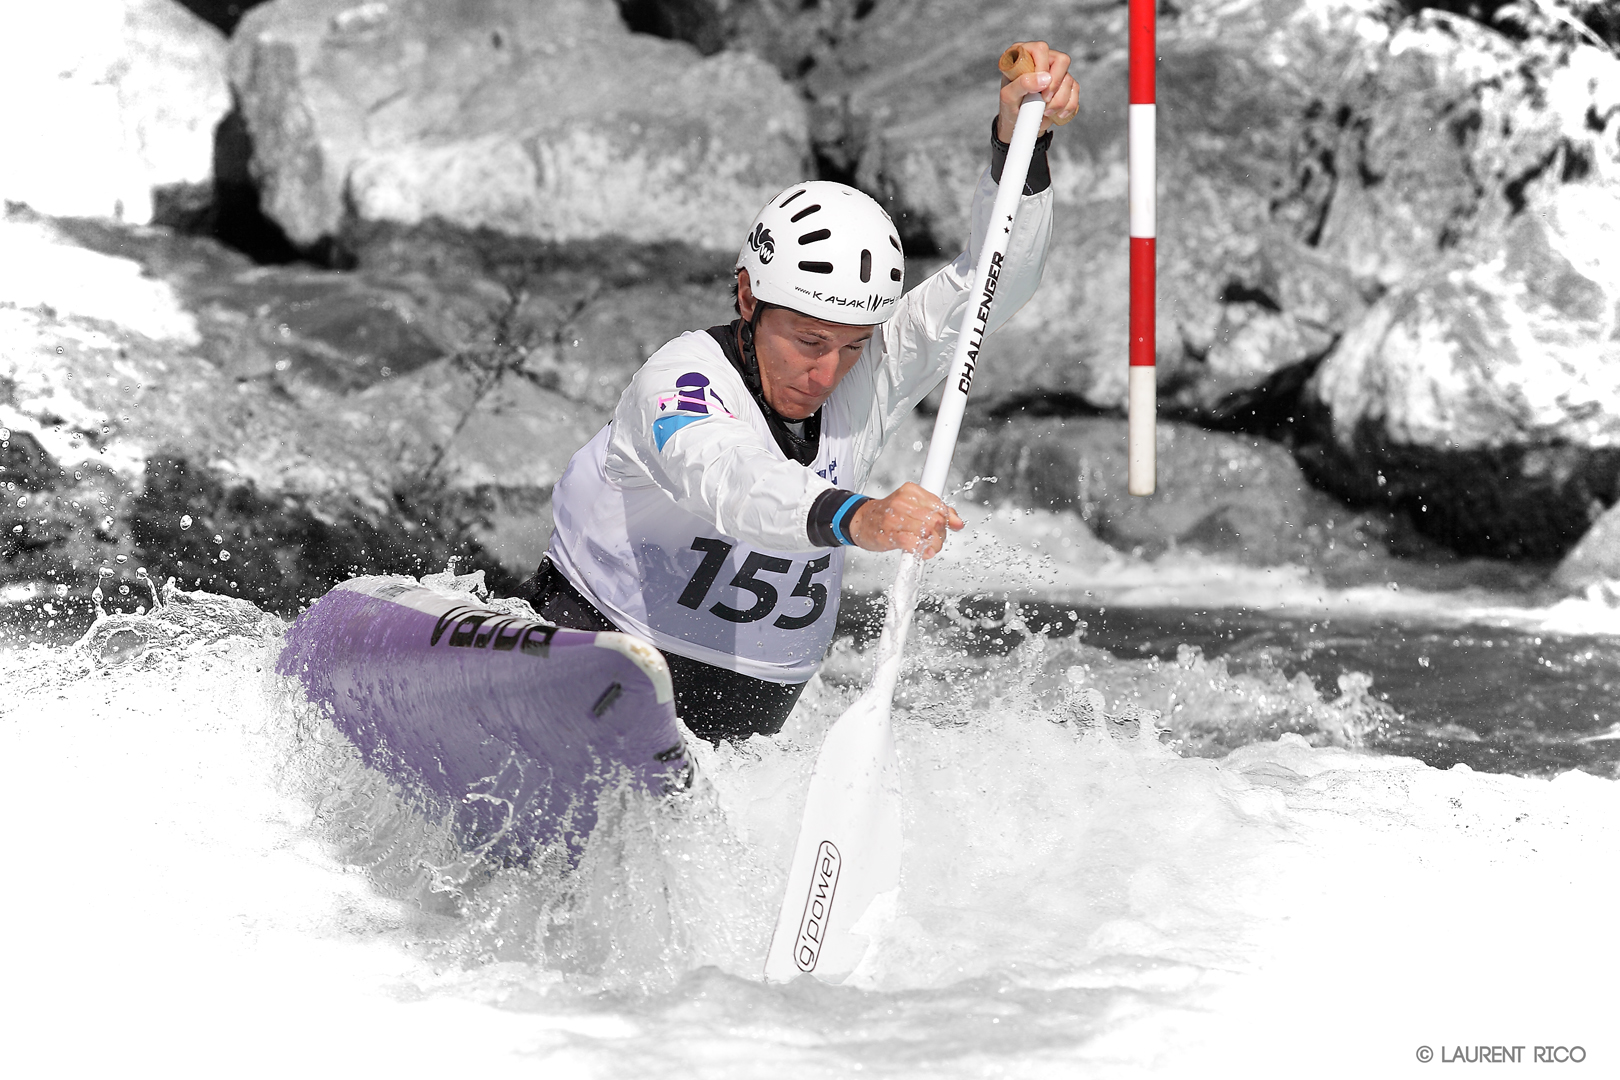 laurent-rico-photo-reportage-competition-bassin-slalom-international-bourg-saint-maurice-savoie-